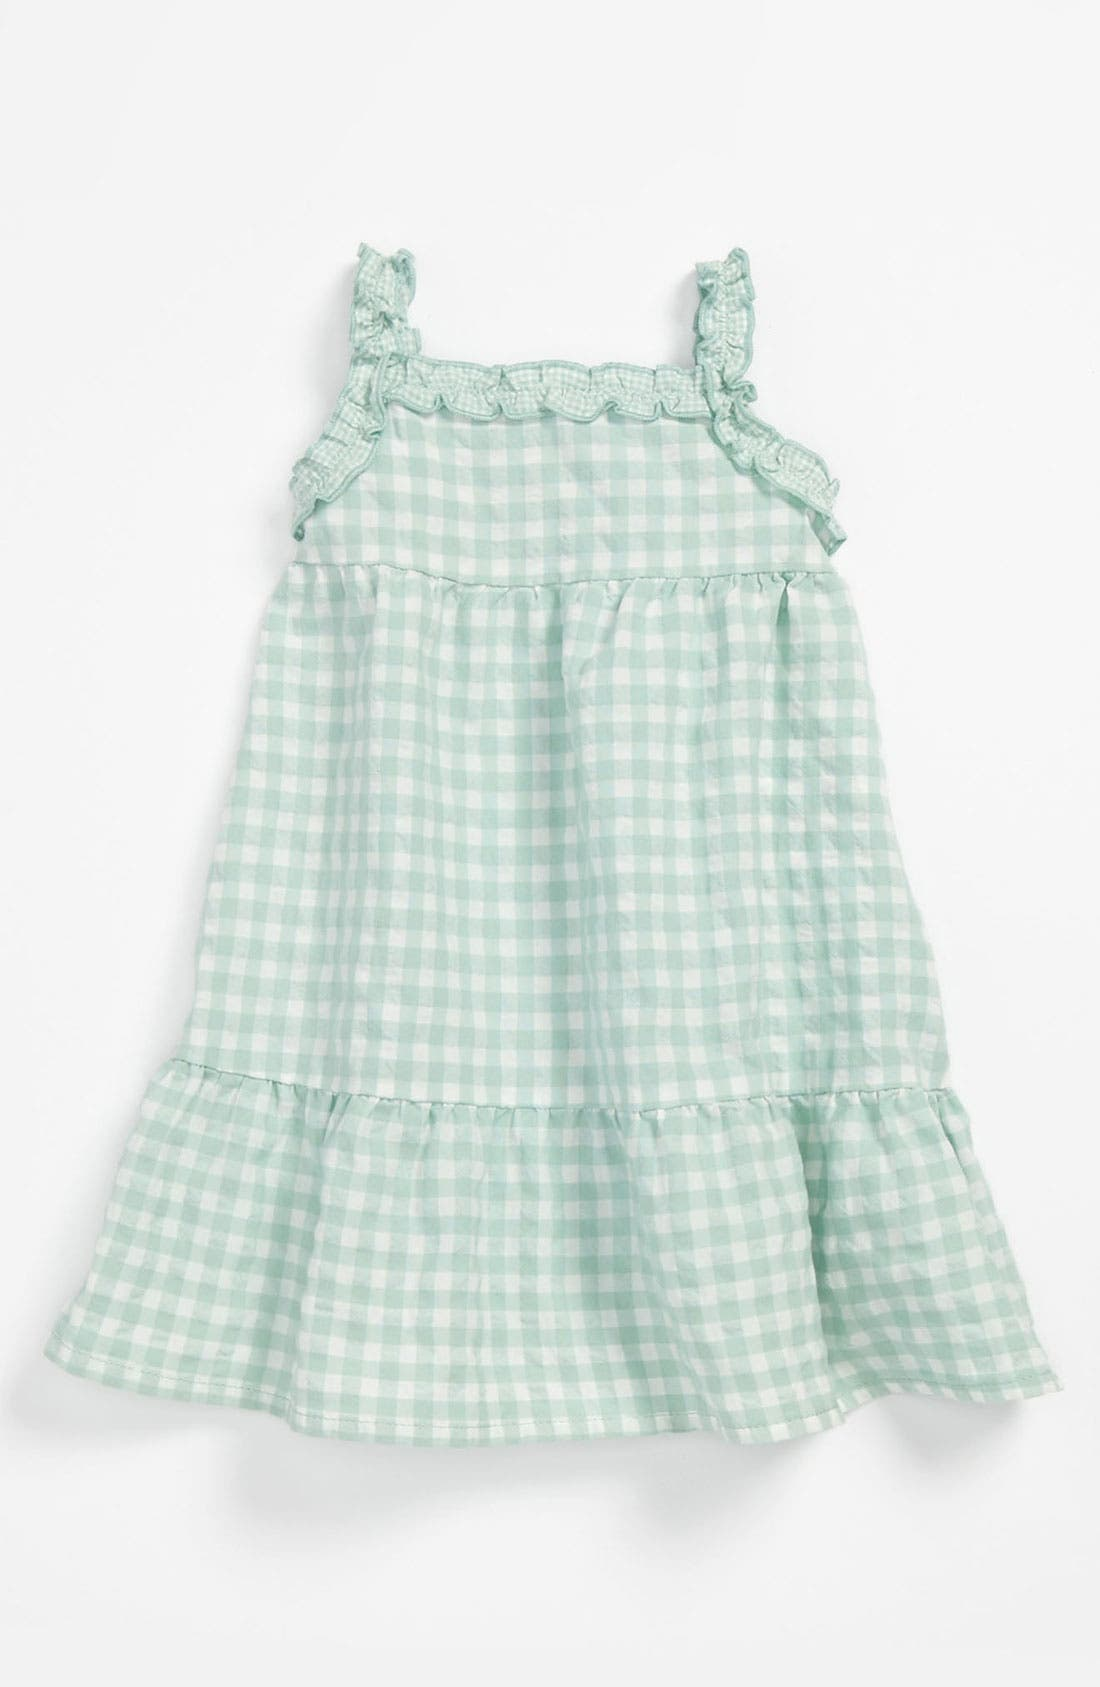 Main Image - United Colors of Benetton Kids Gingham Dress (Infant)